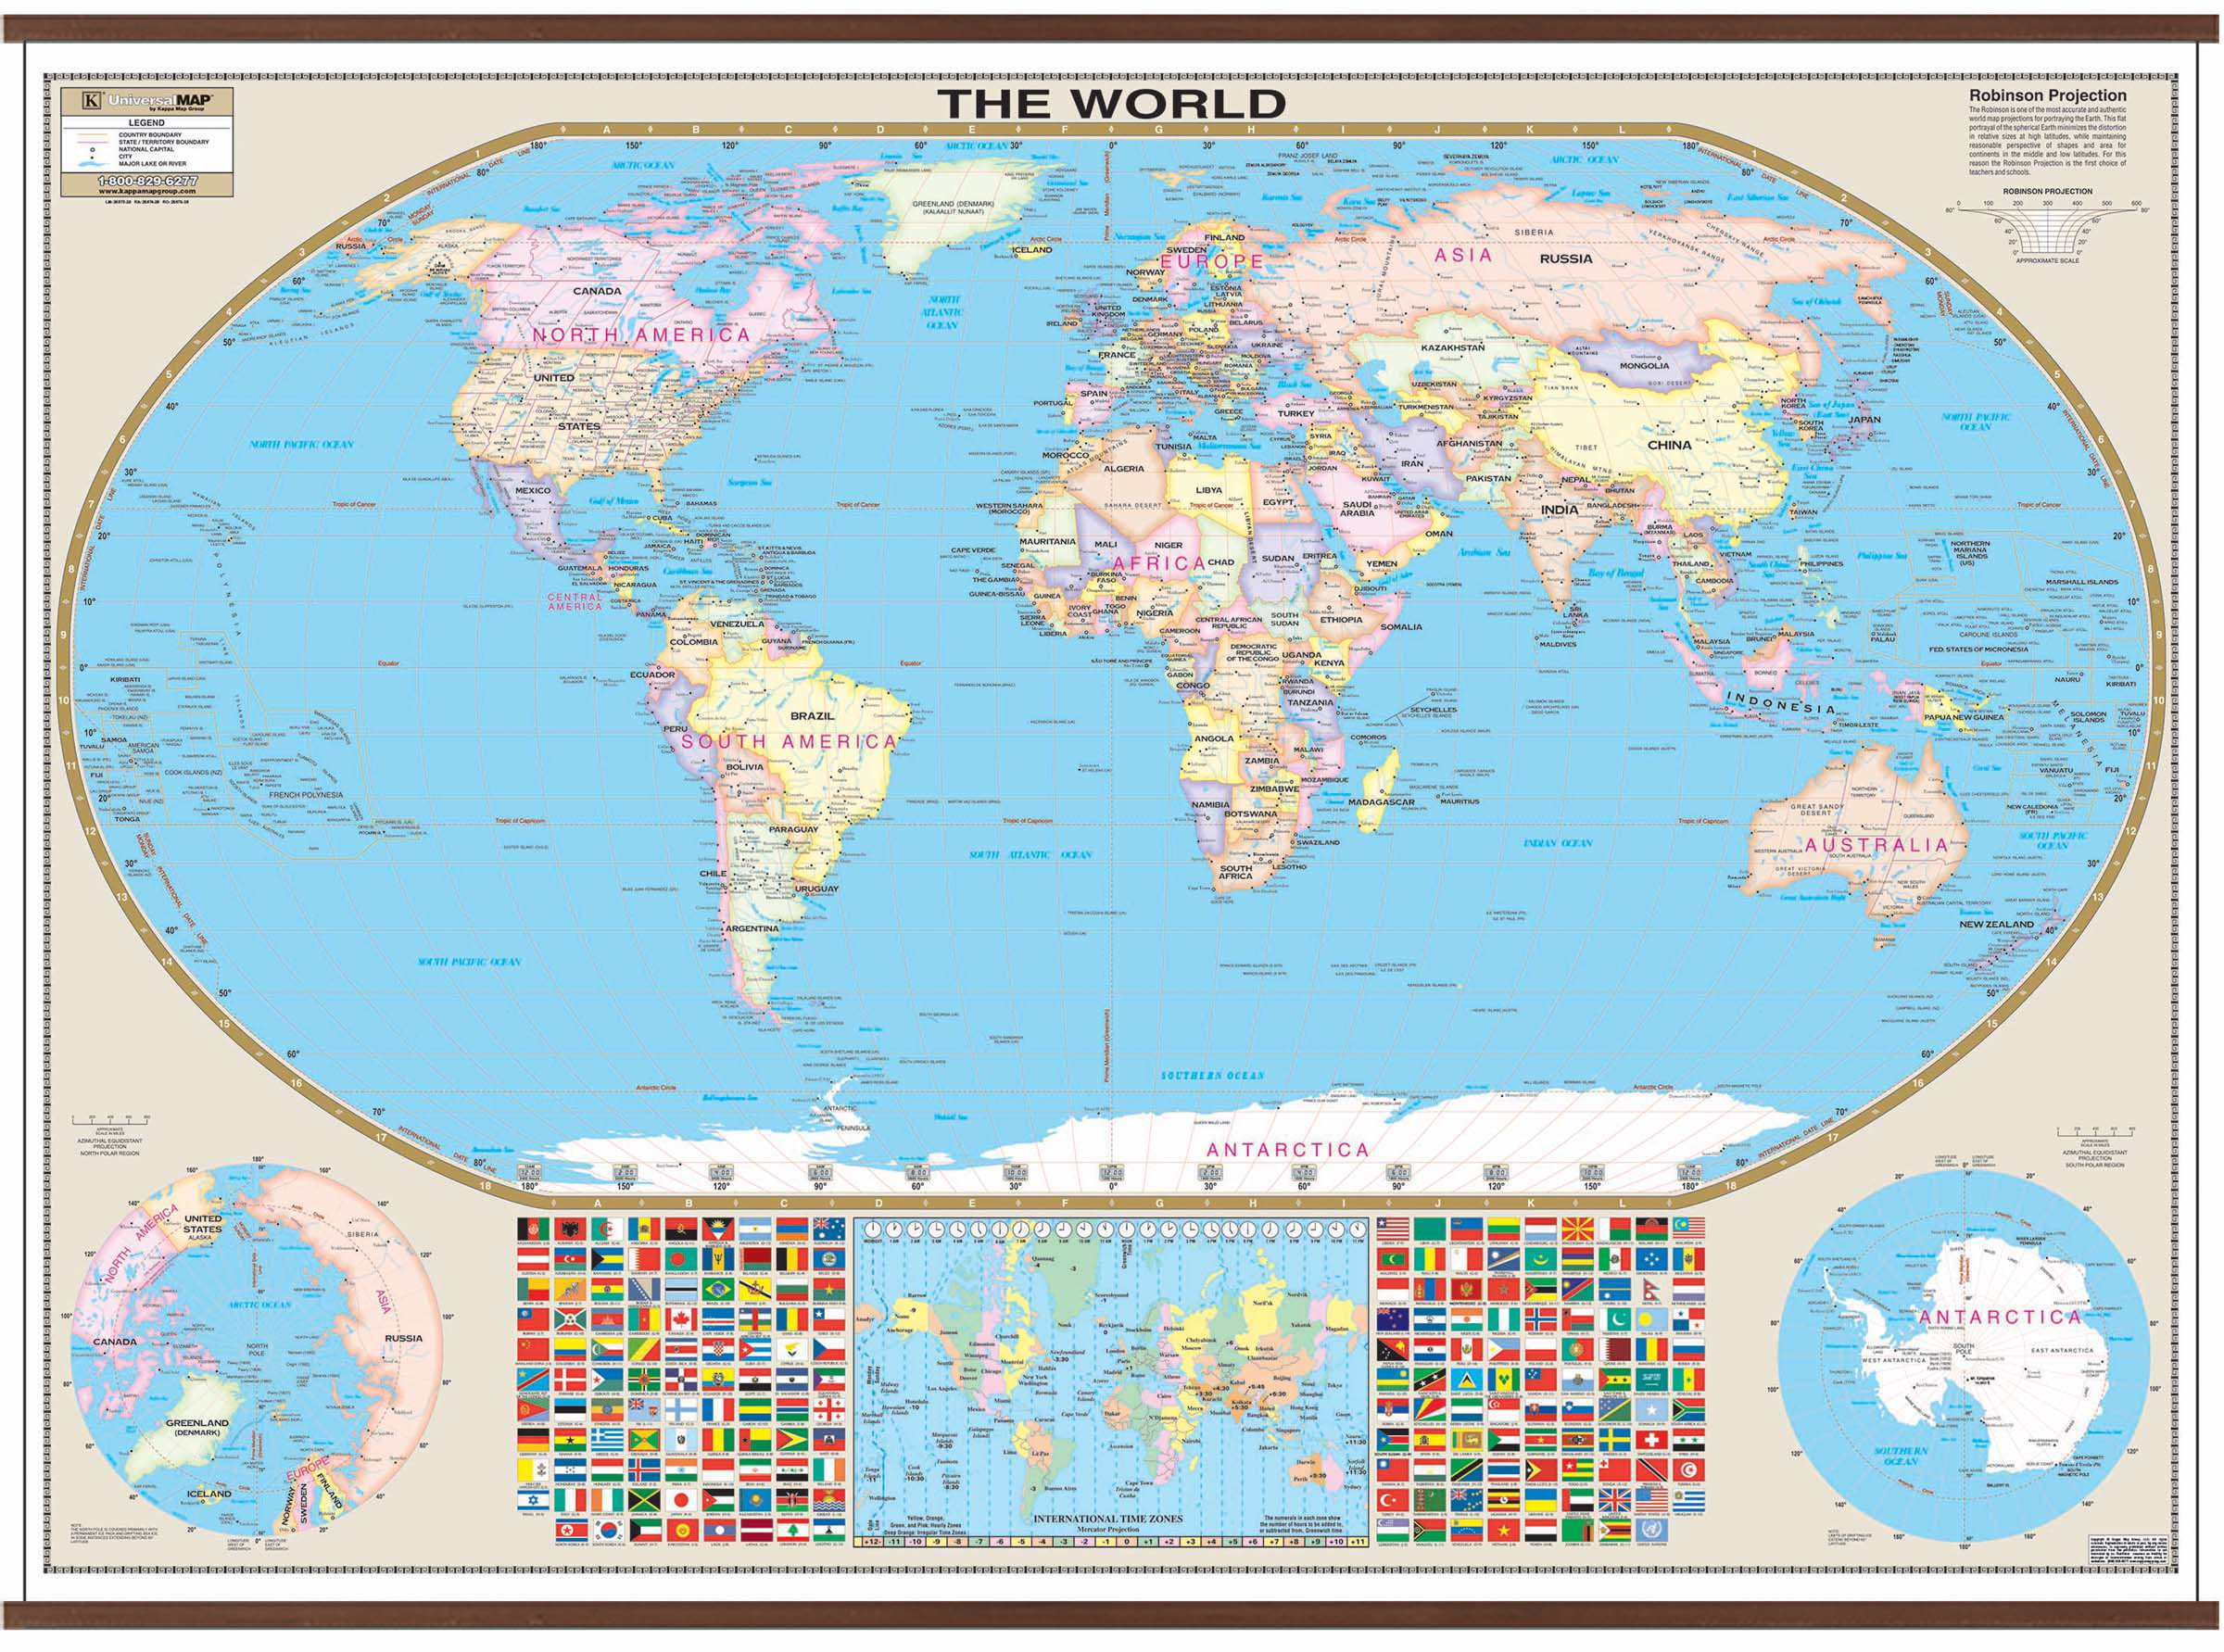 World Large Scale Wall Map – Kappa Map Group - Florida Wall Maps For Sale